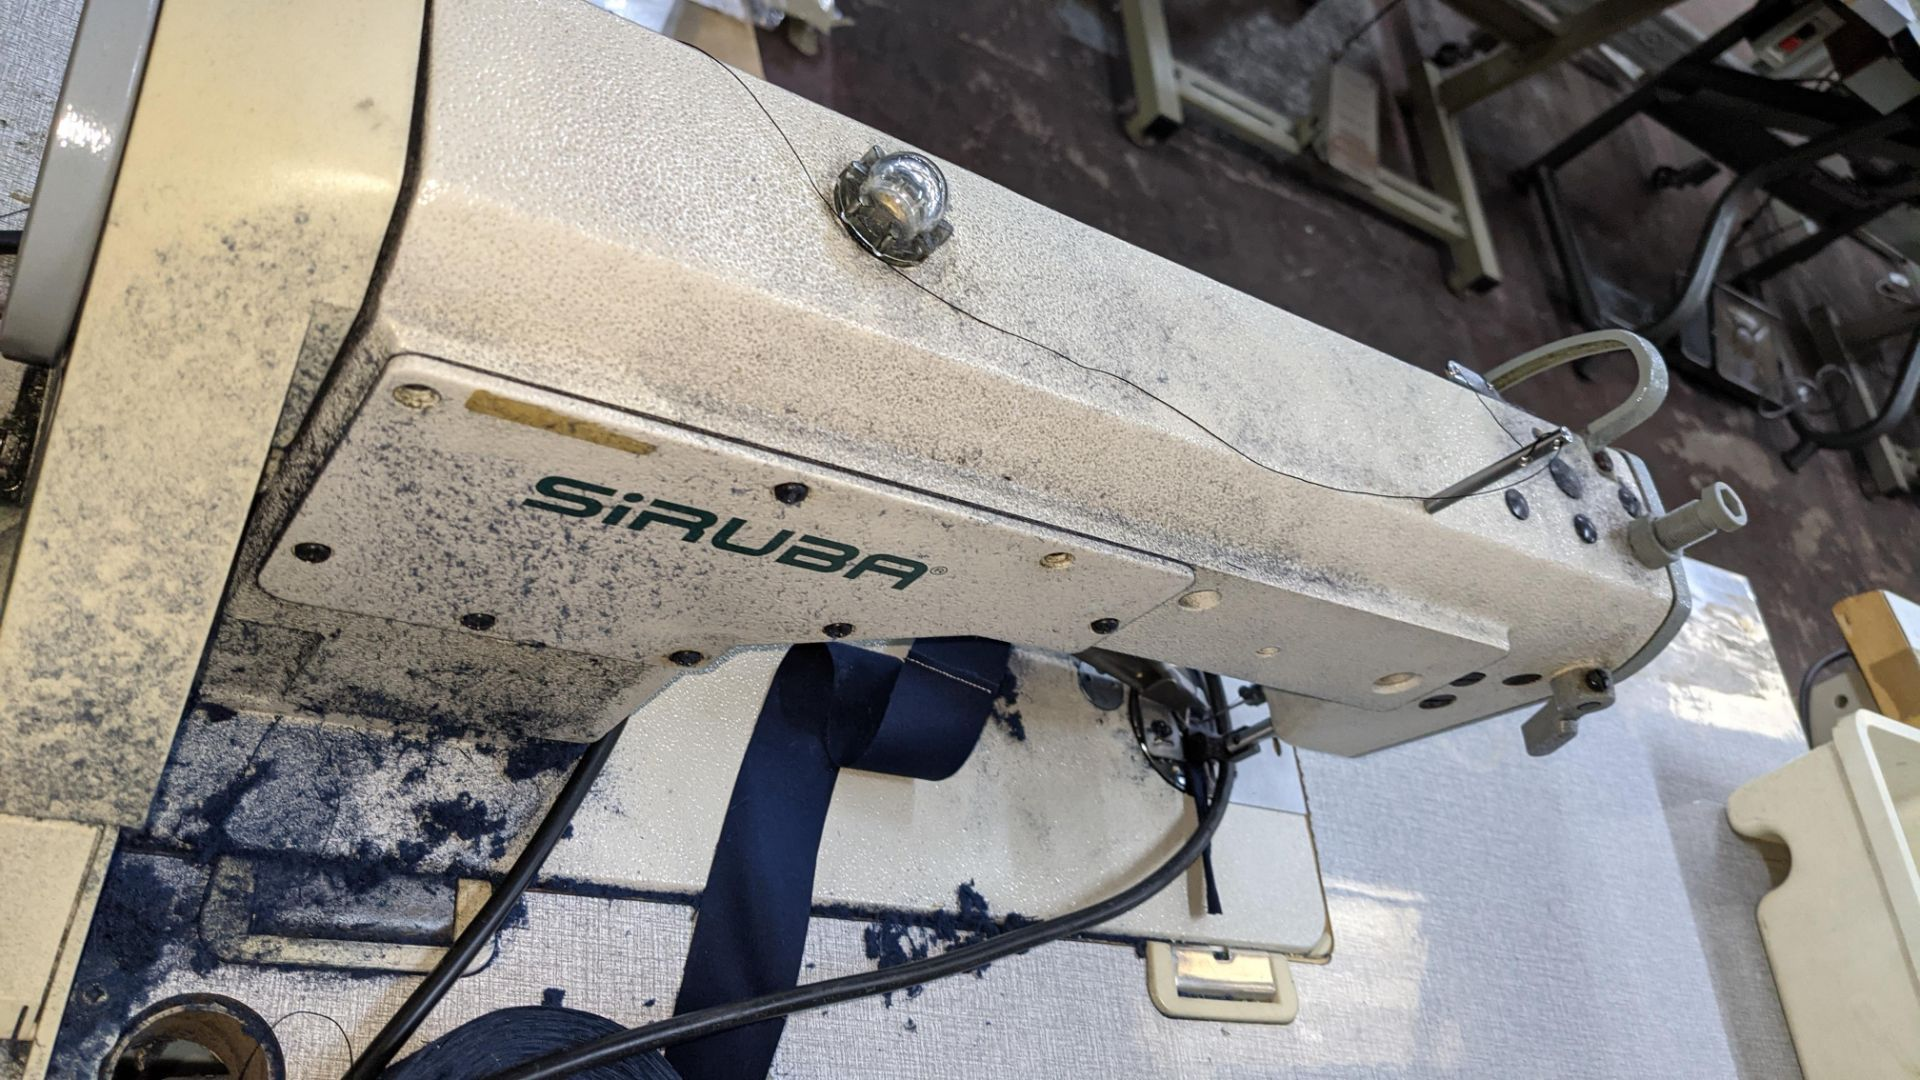 Siruba sewing machine, model L818D-M1, with edge band guide - Image 9 of 13